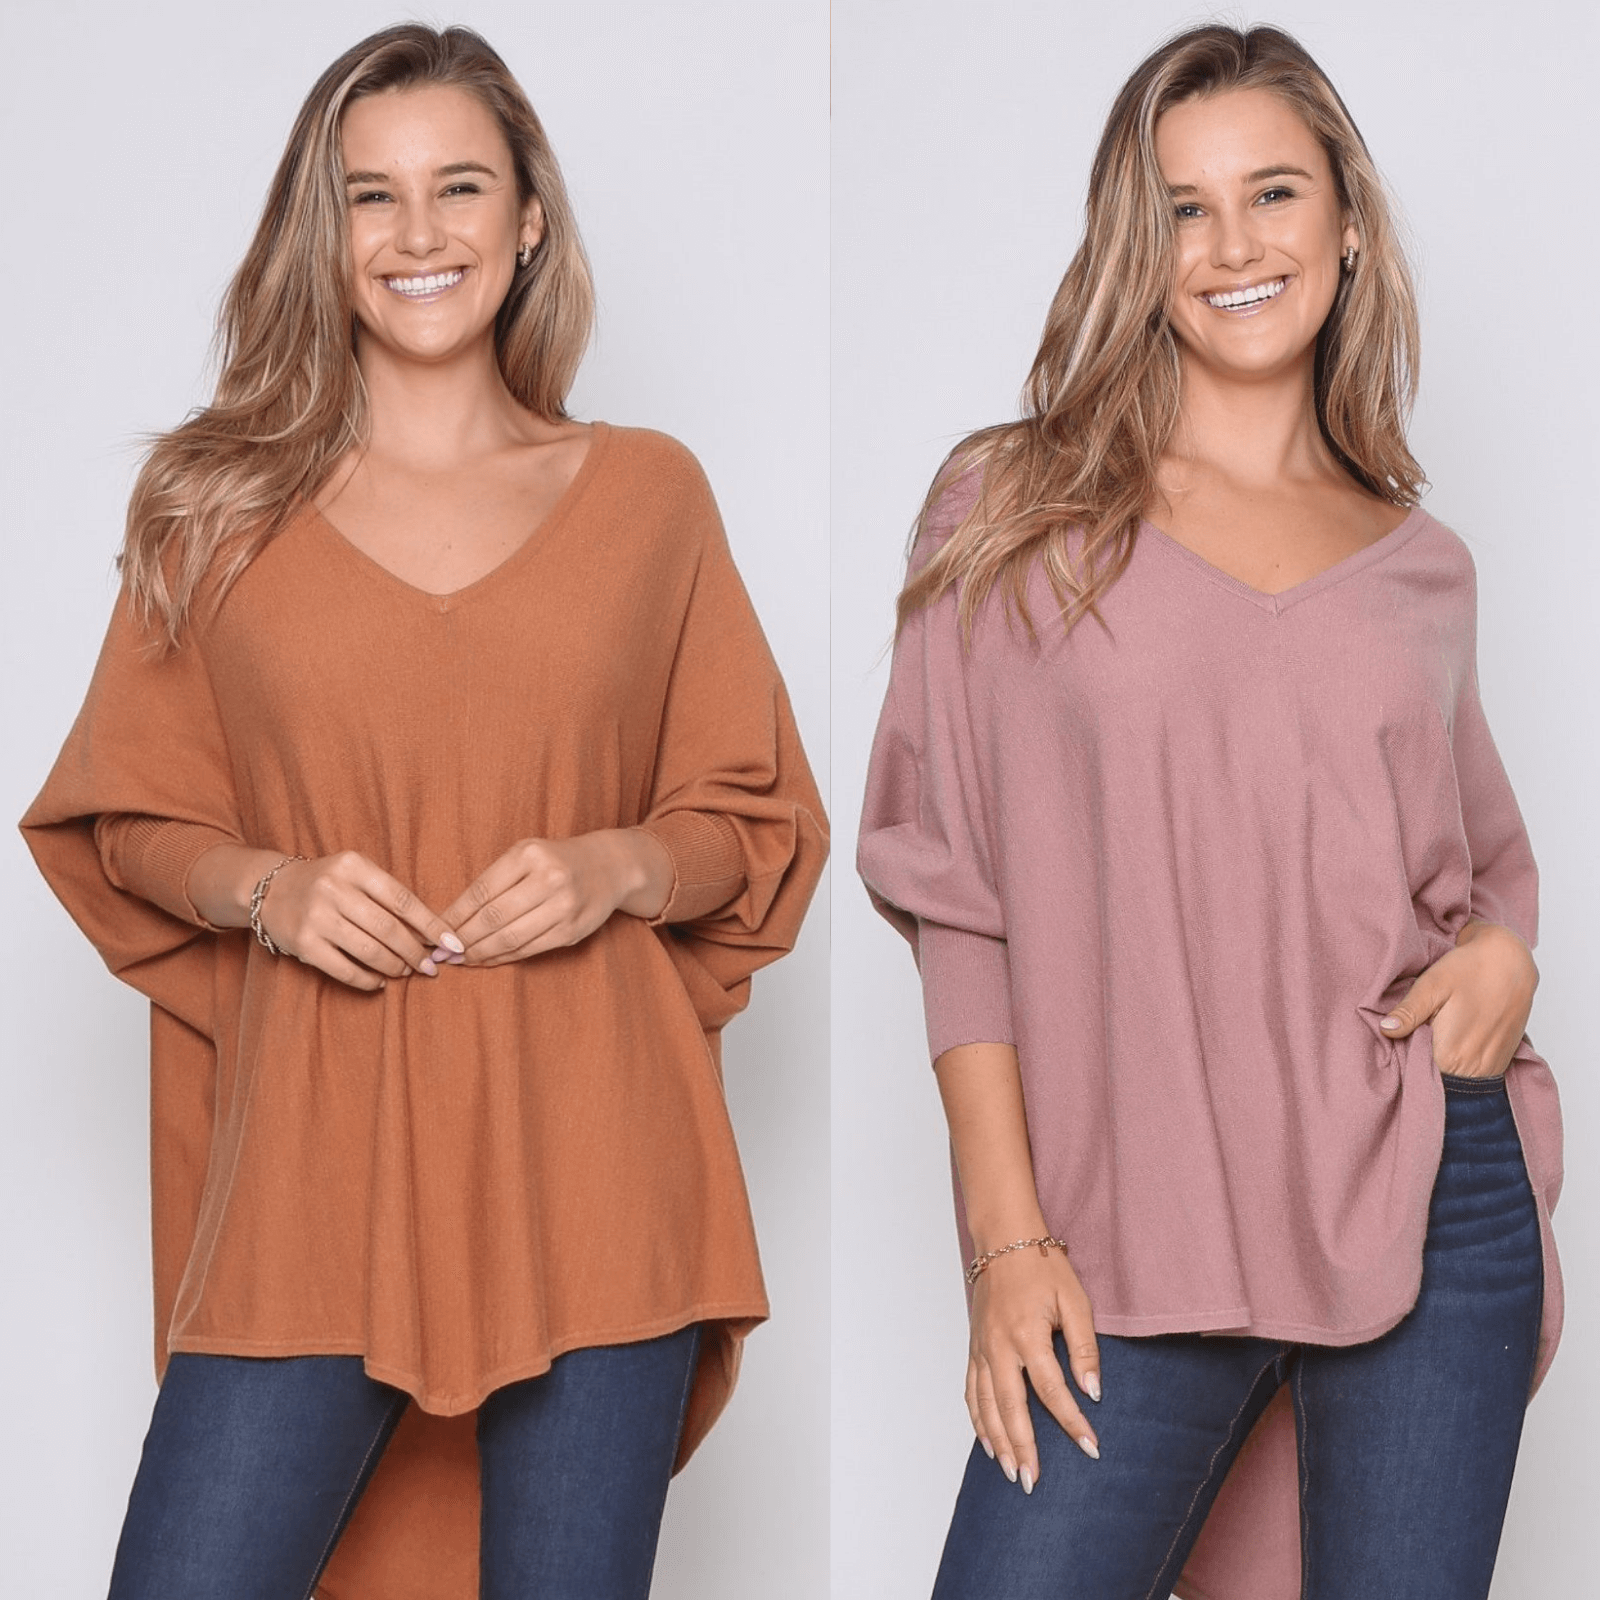 Two Zali Knit Top Bundle - Caramel and Blush